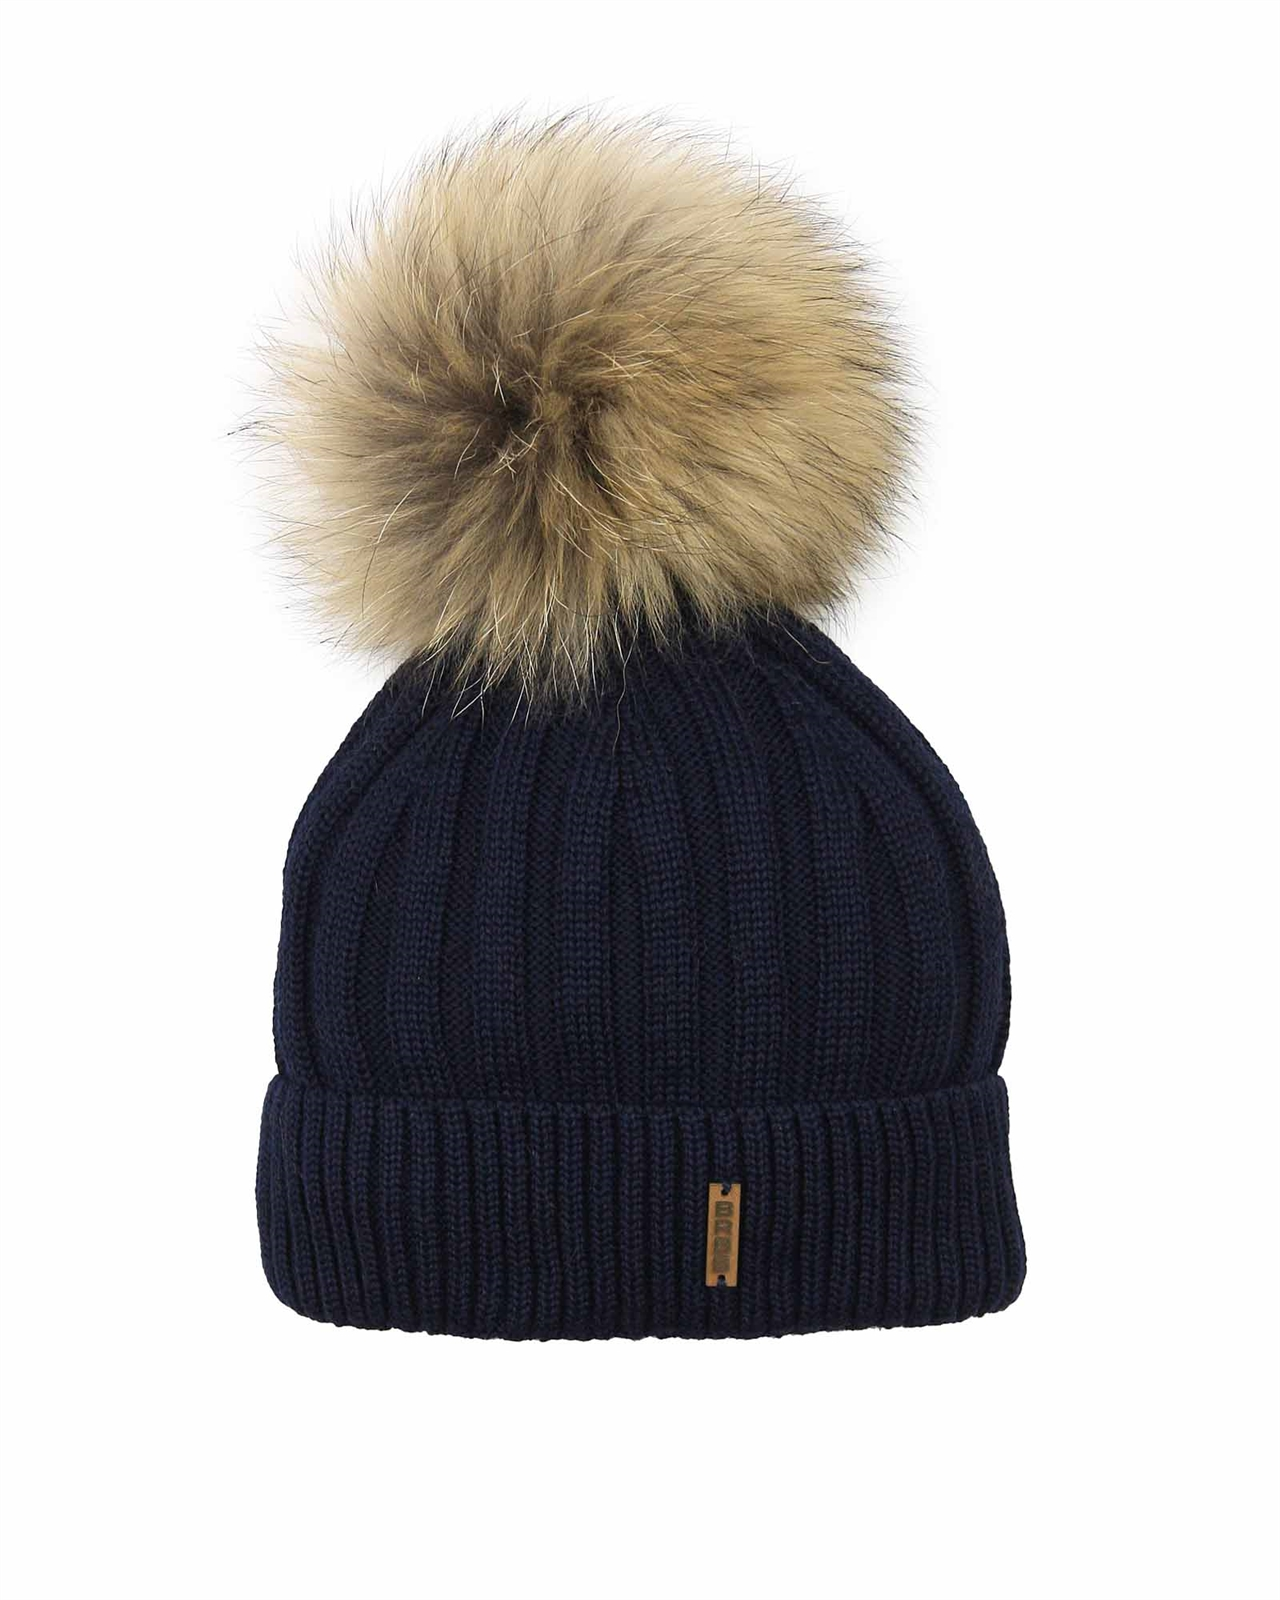 5b8d38d3e7a Barbaras Boys  Wool Beanie Hat in Navy with Racoon Pompom - Barbara ...